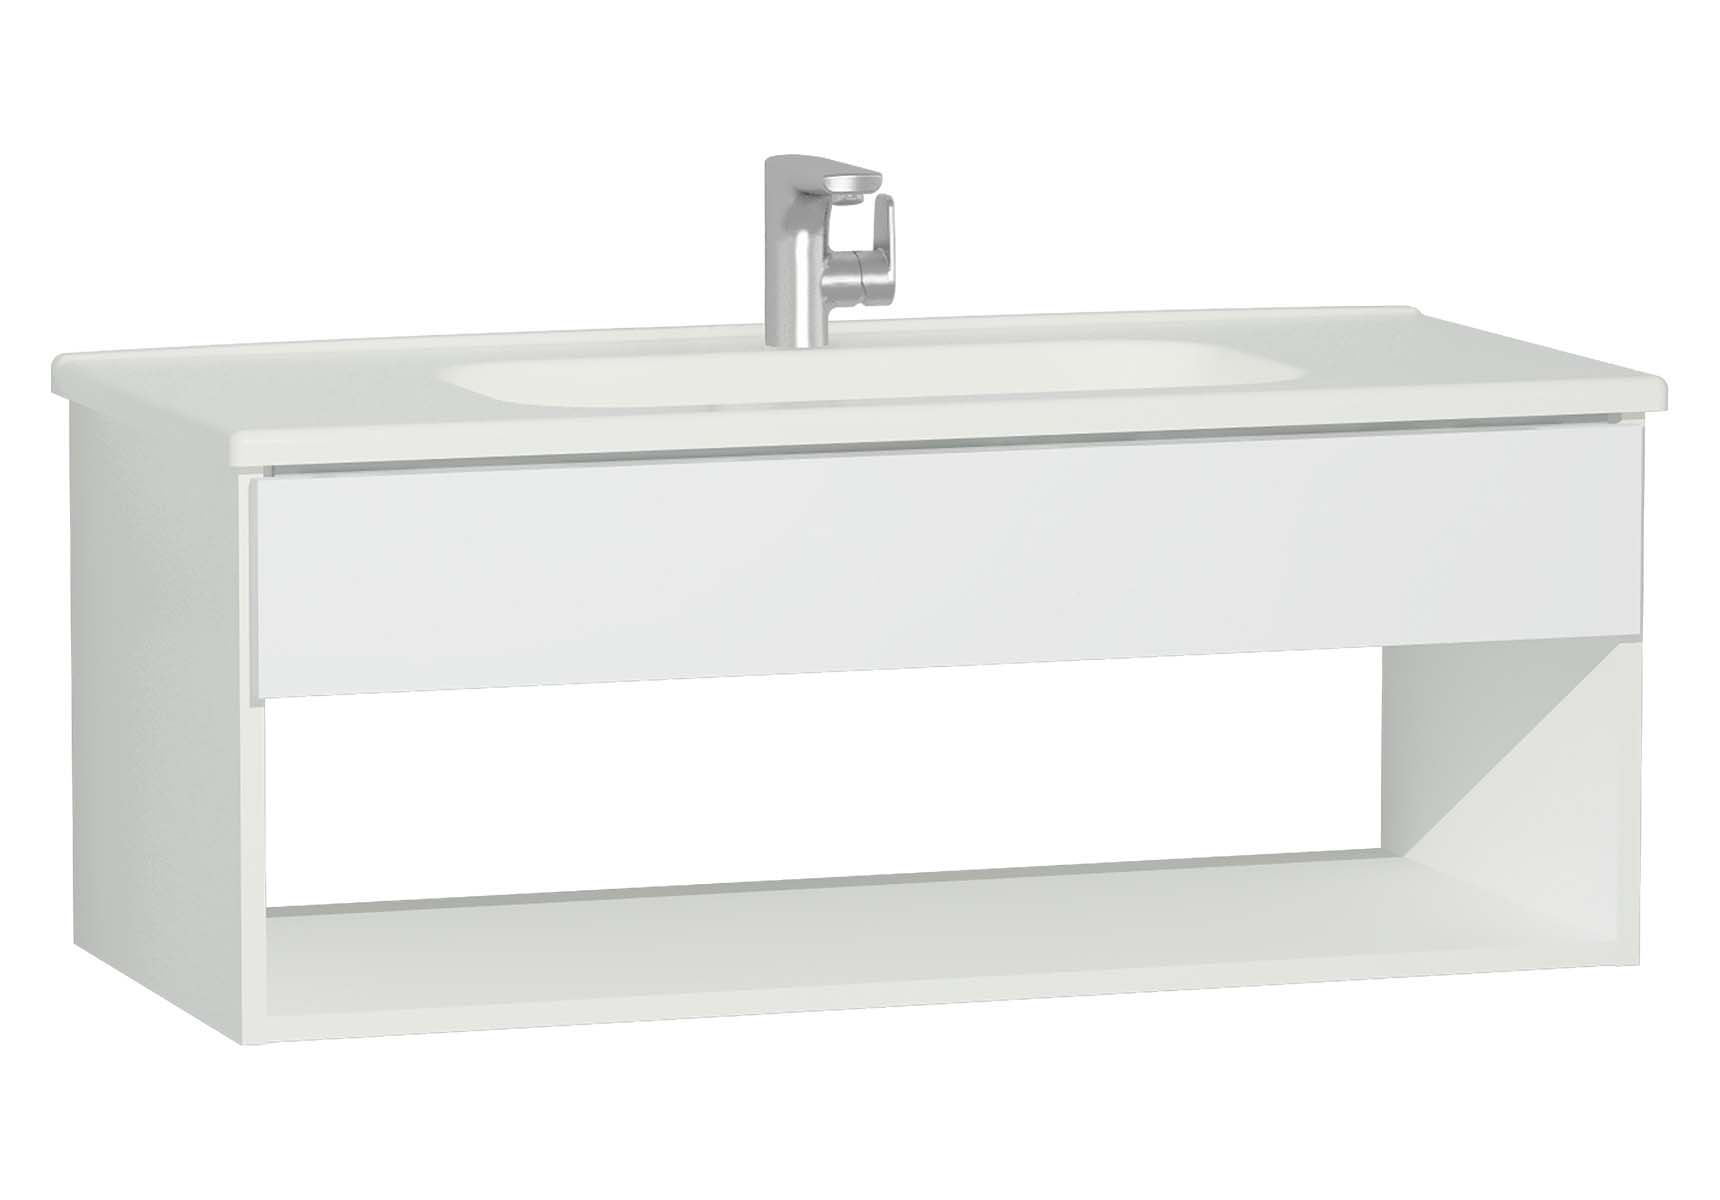 D-Light Hotel Unit, 110 cm, Matte White